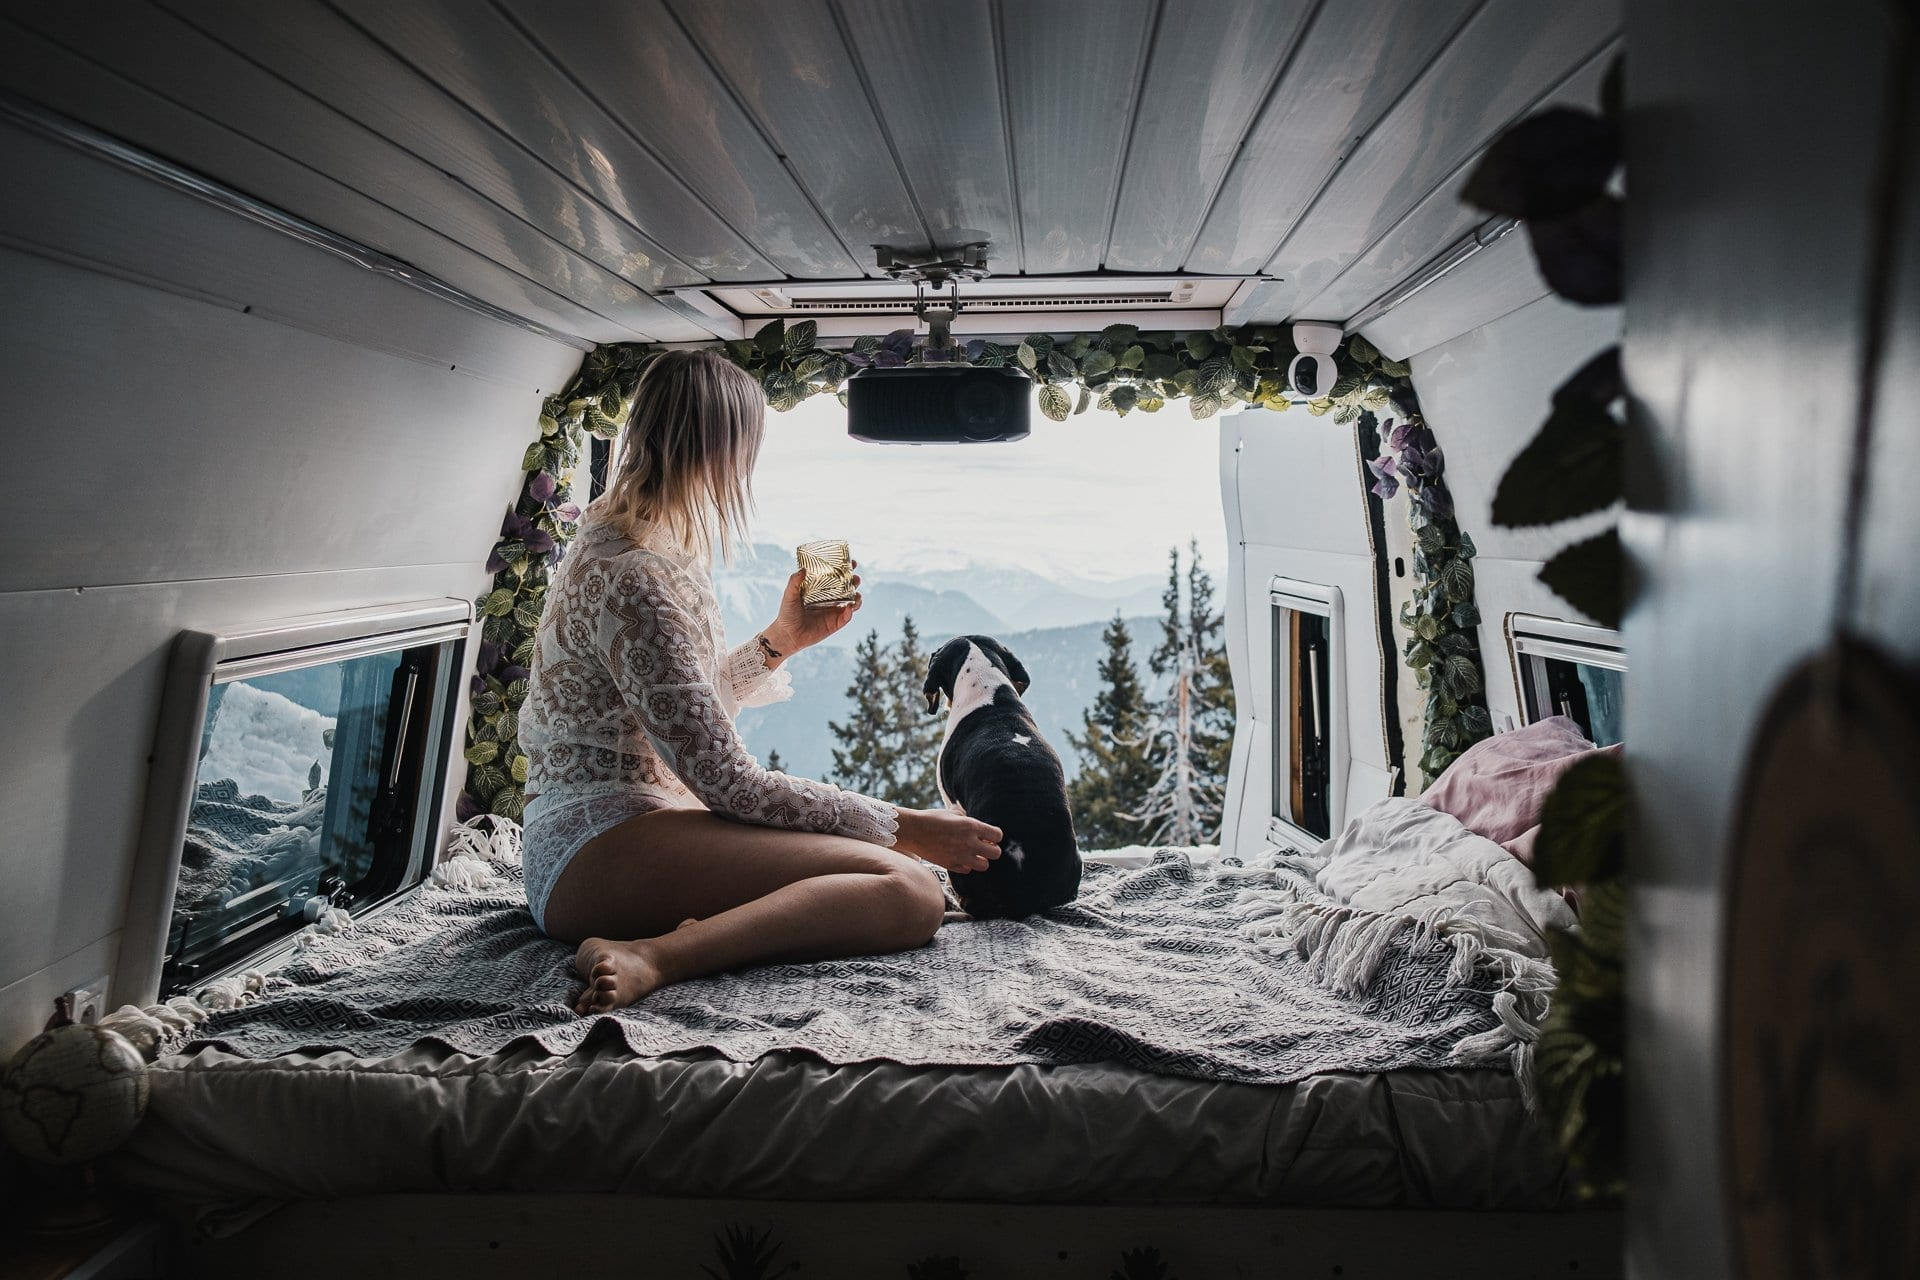 iveco-daily-unic-van-fourgon-amenage-vanlife-roadtrip-voyage-europe